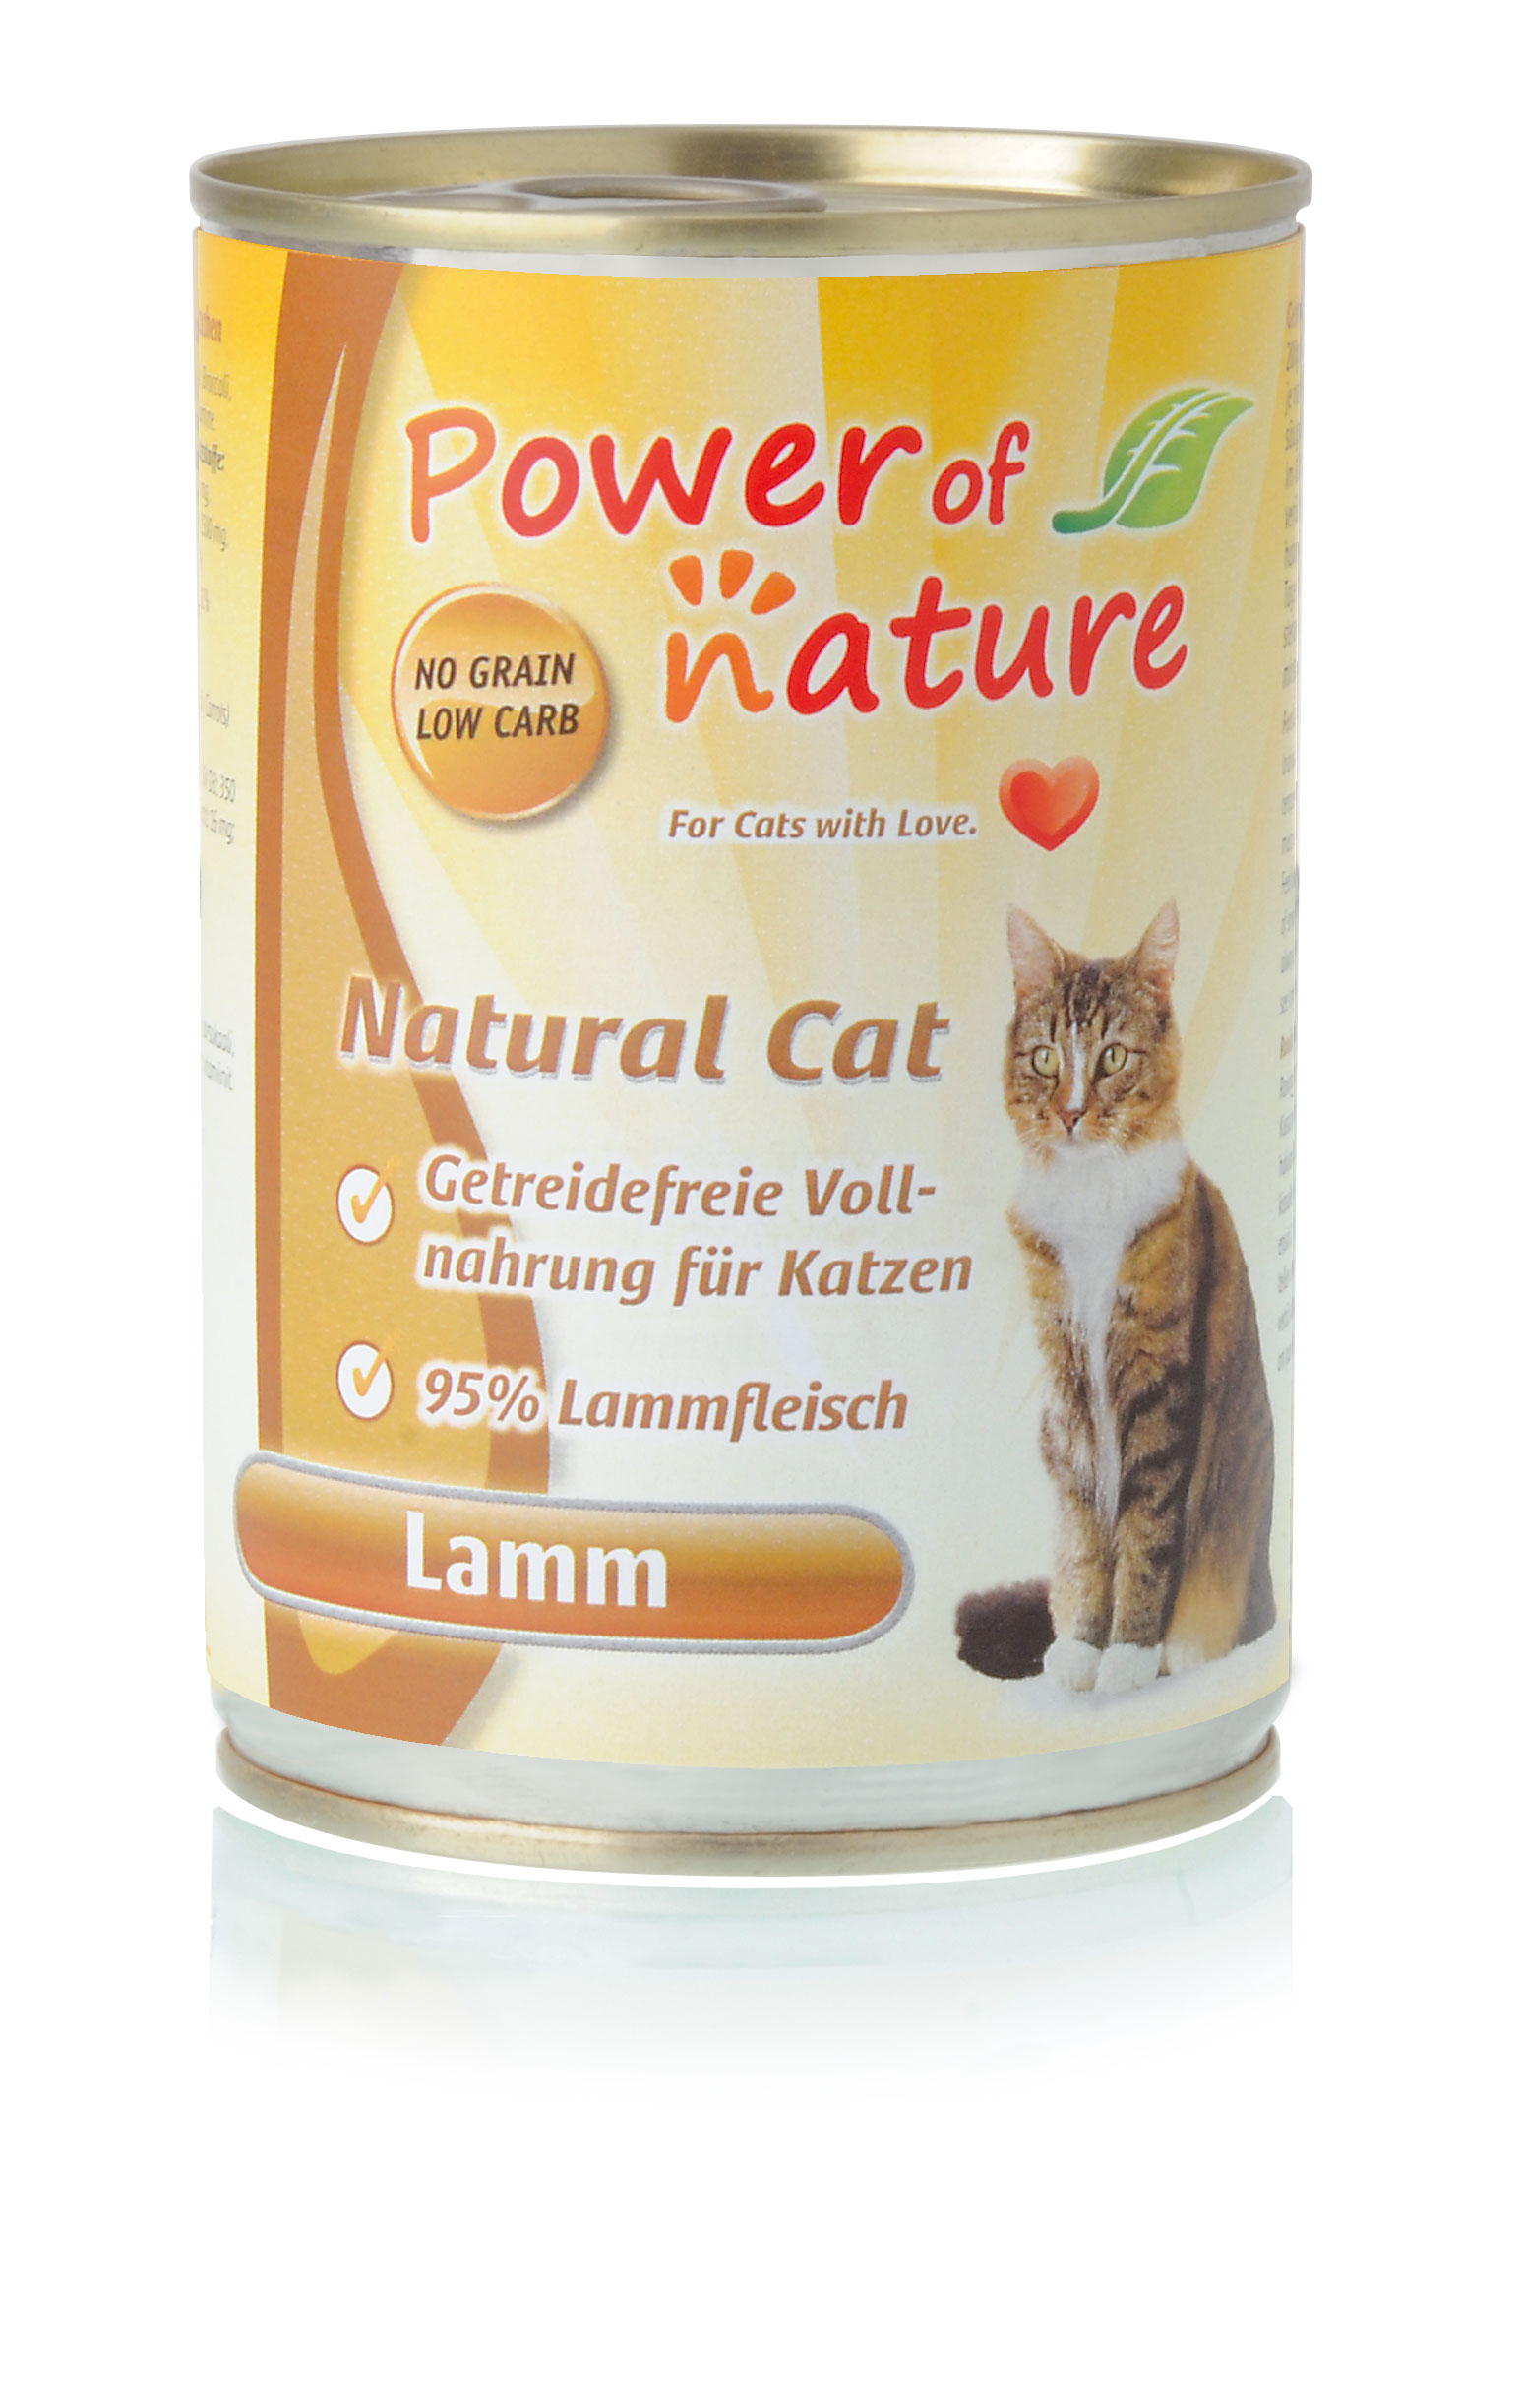 Power of Nature Natural Cat Dose Lamm 24 x 400g